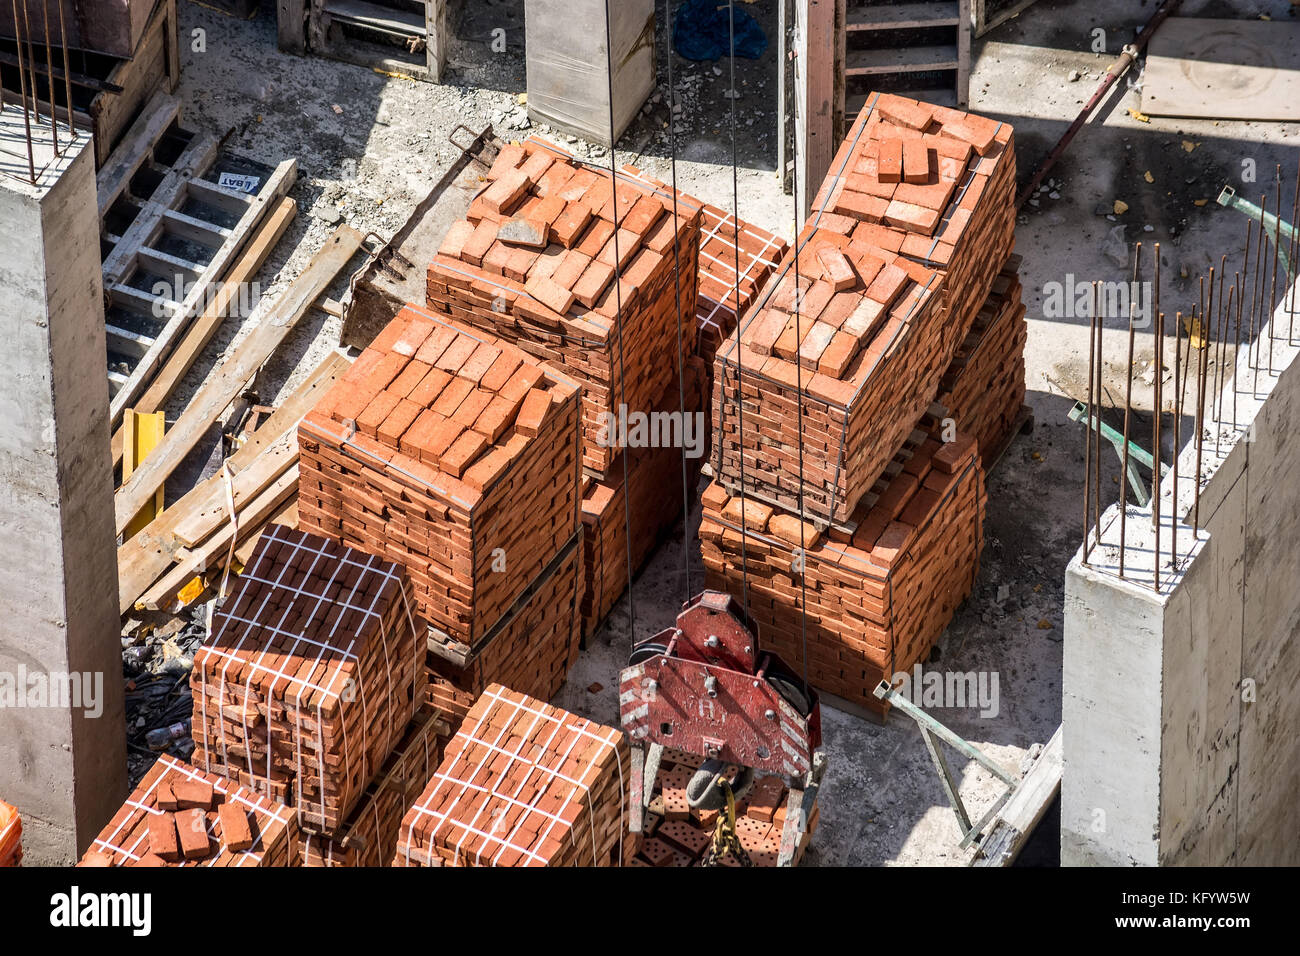 Construction site of new building - Stock Image